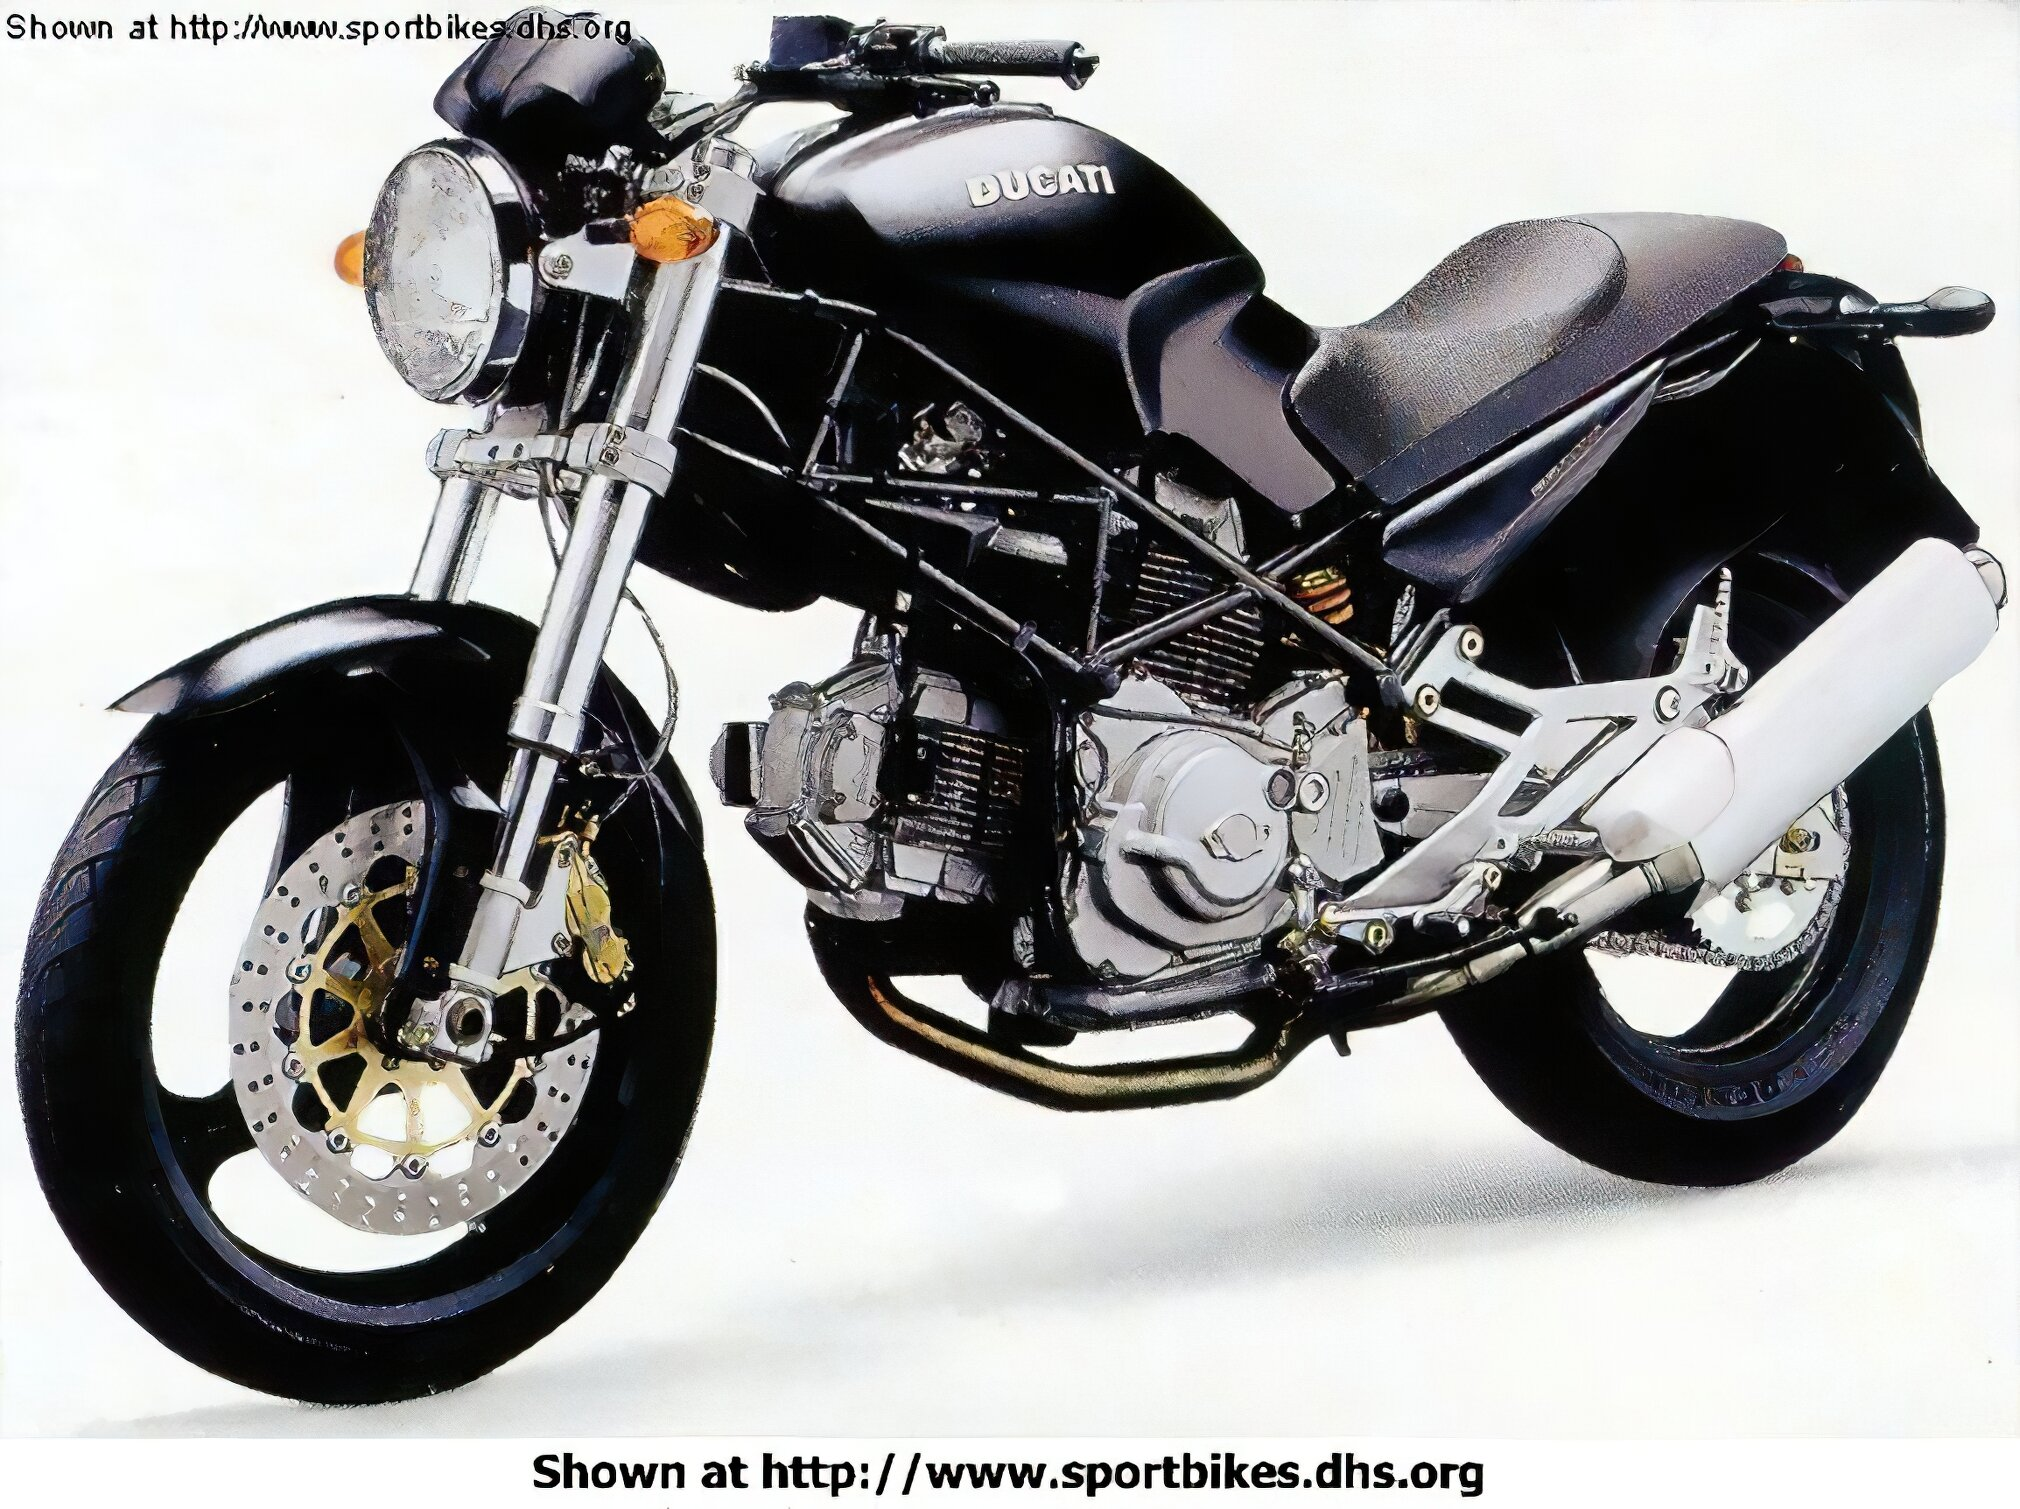 Ducati Monster Models - ID: 7885